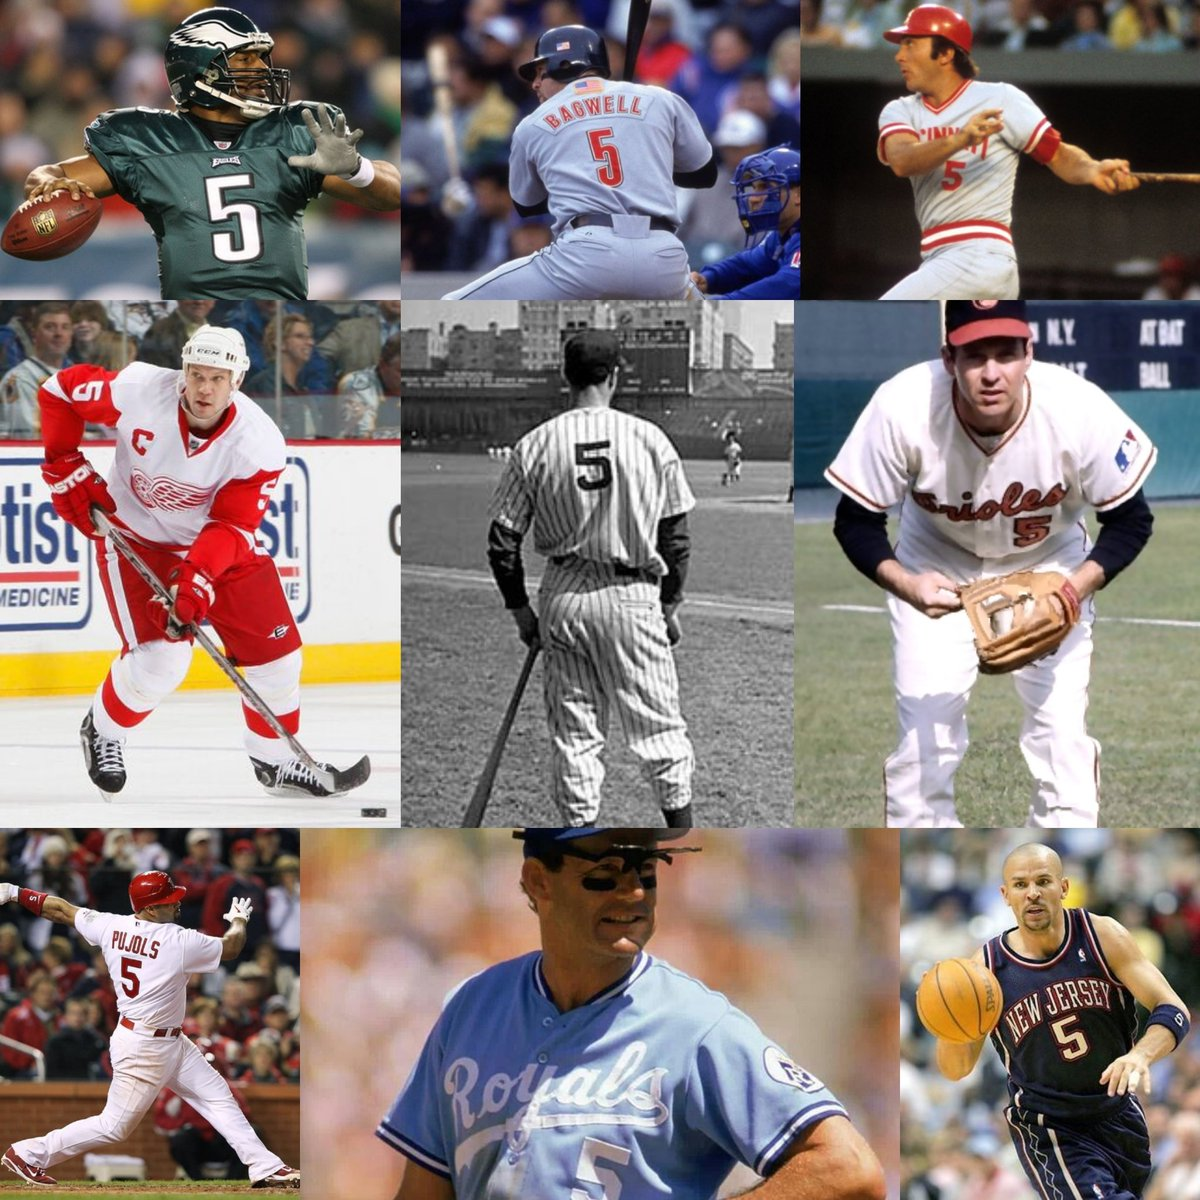 Days until #inauguration2021  #IAmOneOfThe81Million #NoMoreParler #NoFlyList #ByeDon @POTUS  ...and take @VP @KellyannePolls @FLOTUS @DonaldJTrumpJr @EricTrump and @IvankaTrump with you on the way out  @Eagles @astros @Reds @DetroitRedWings @Yankees @Orioles @Royals @BrooklynNets